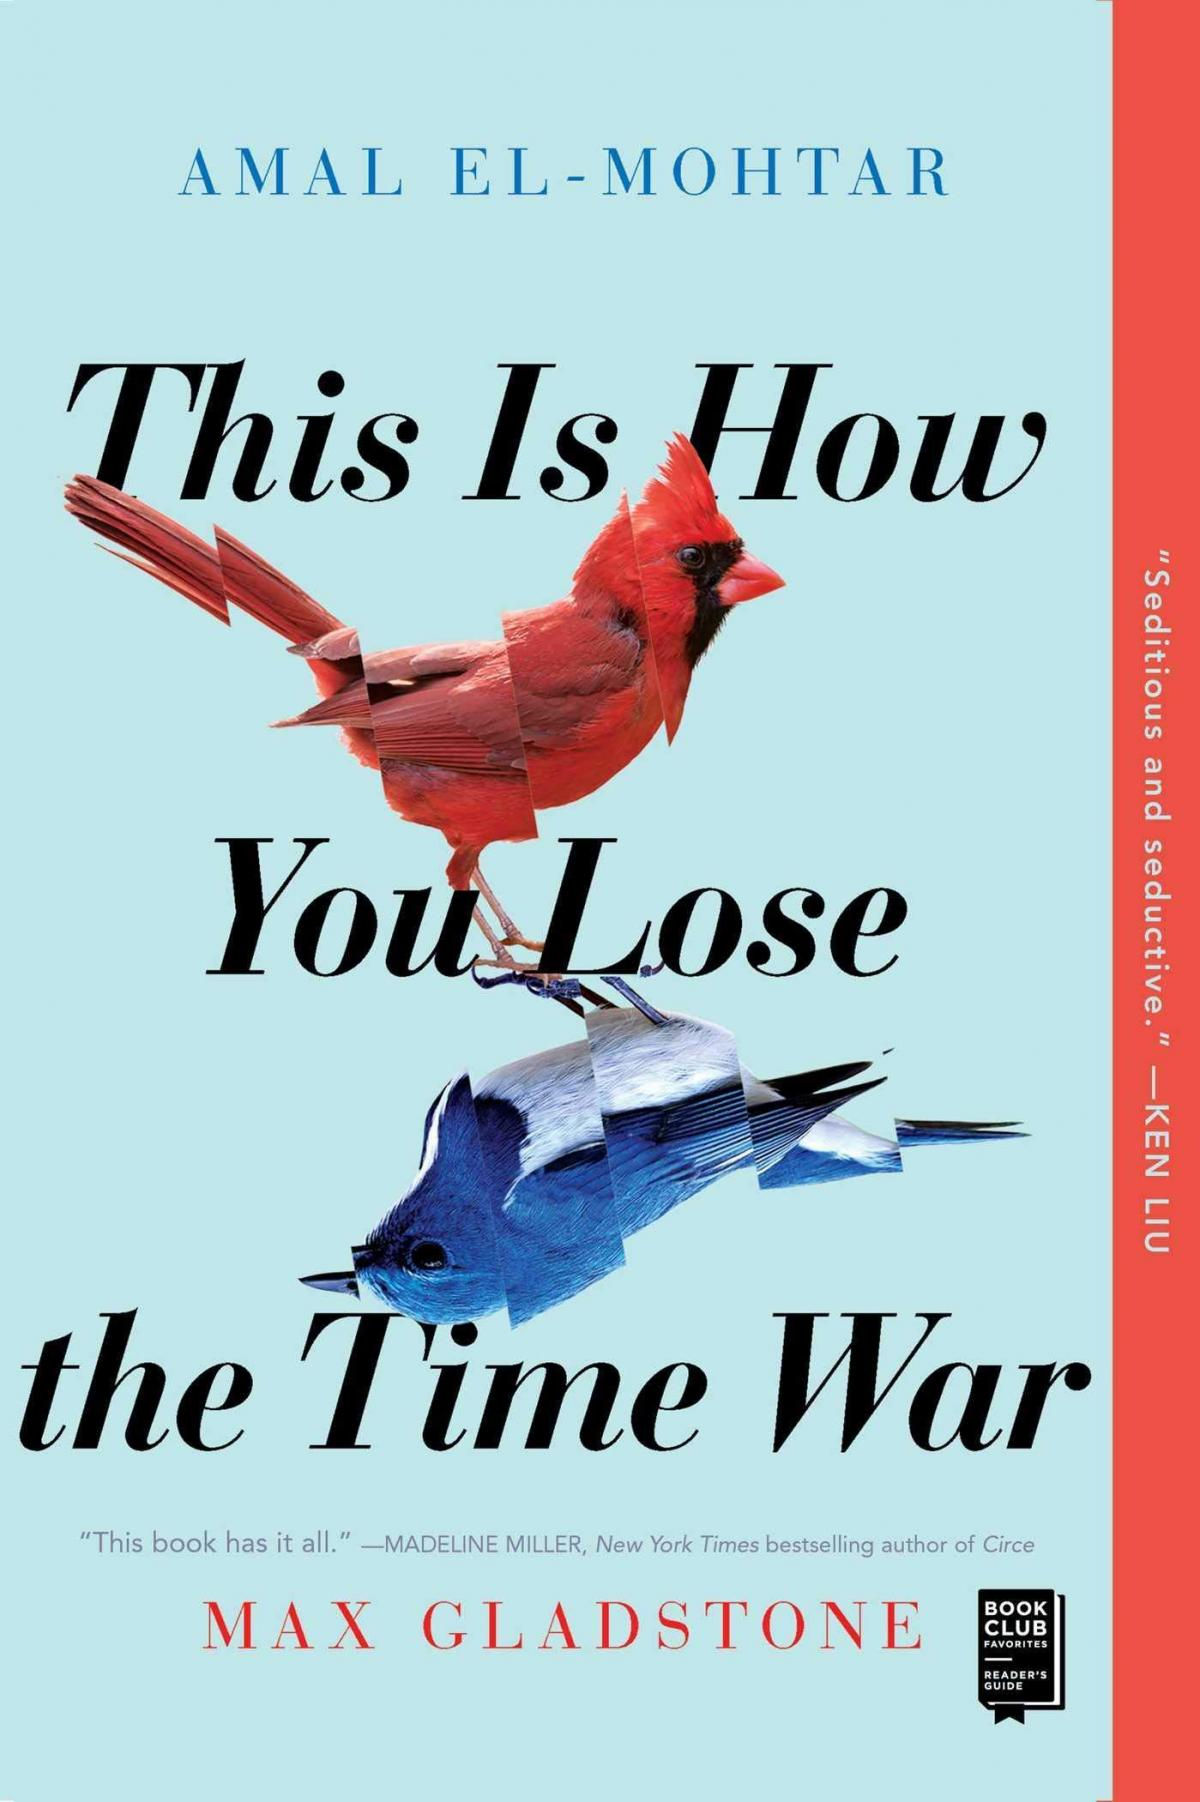 This Is How You Lose the Time War, Max Gladstone & Amal El-Mohtar